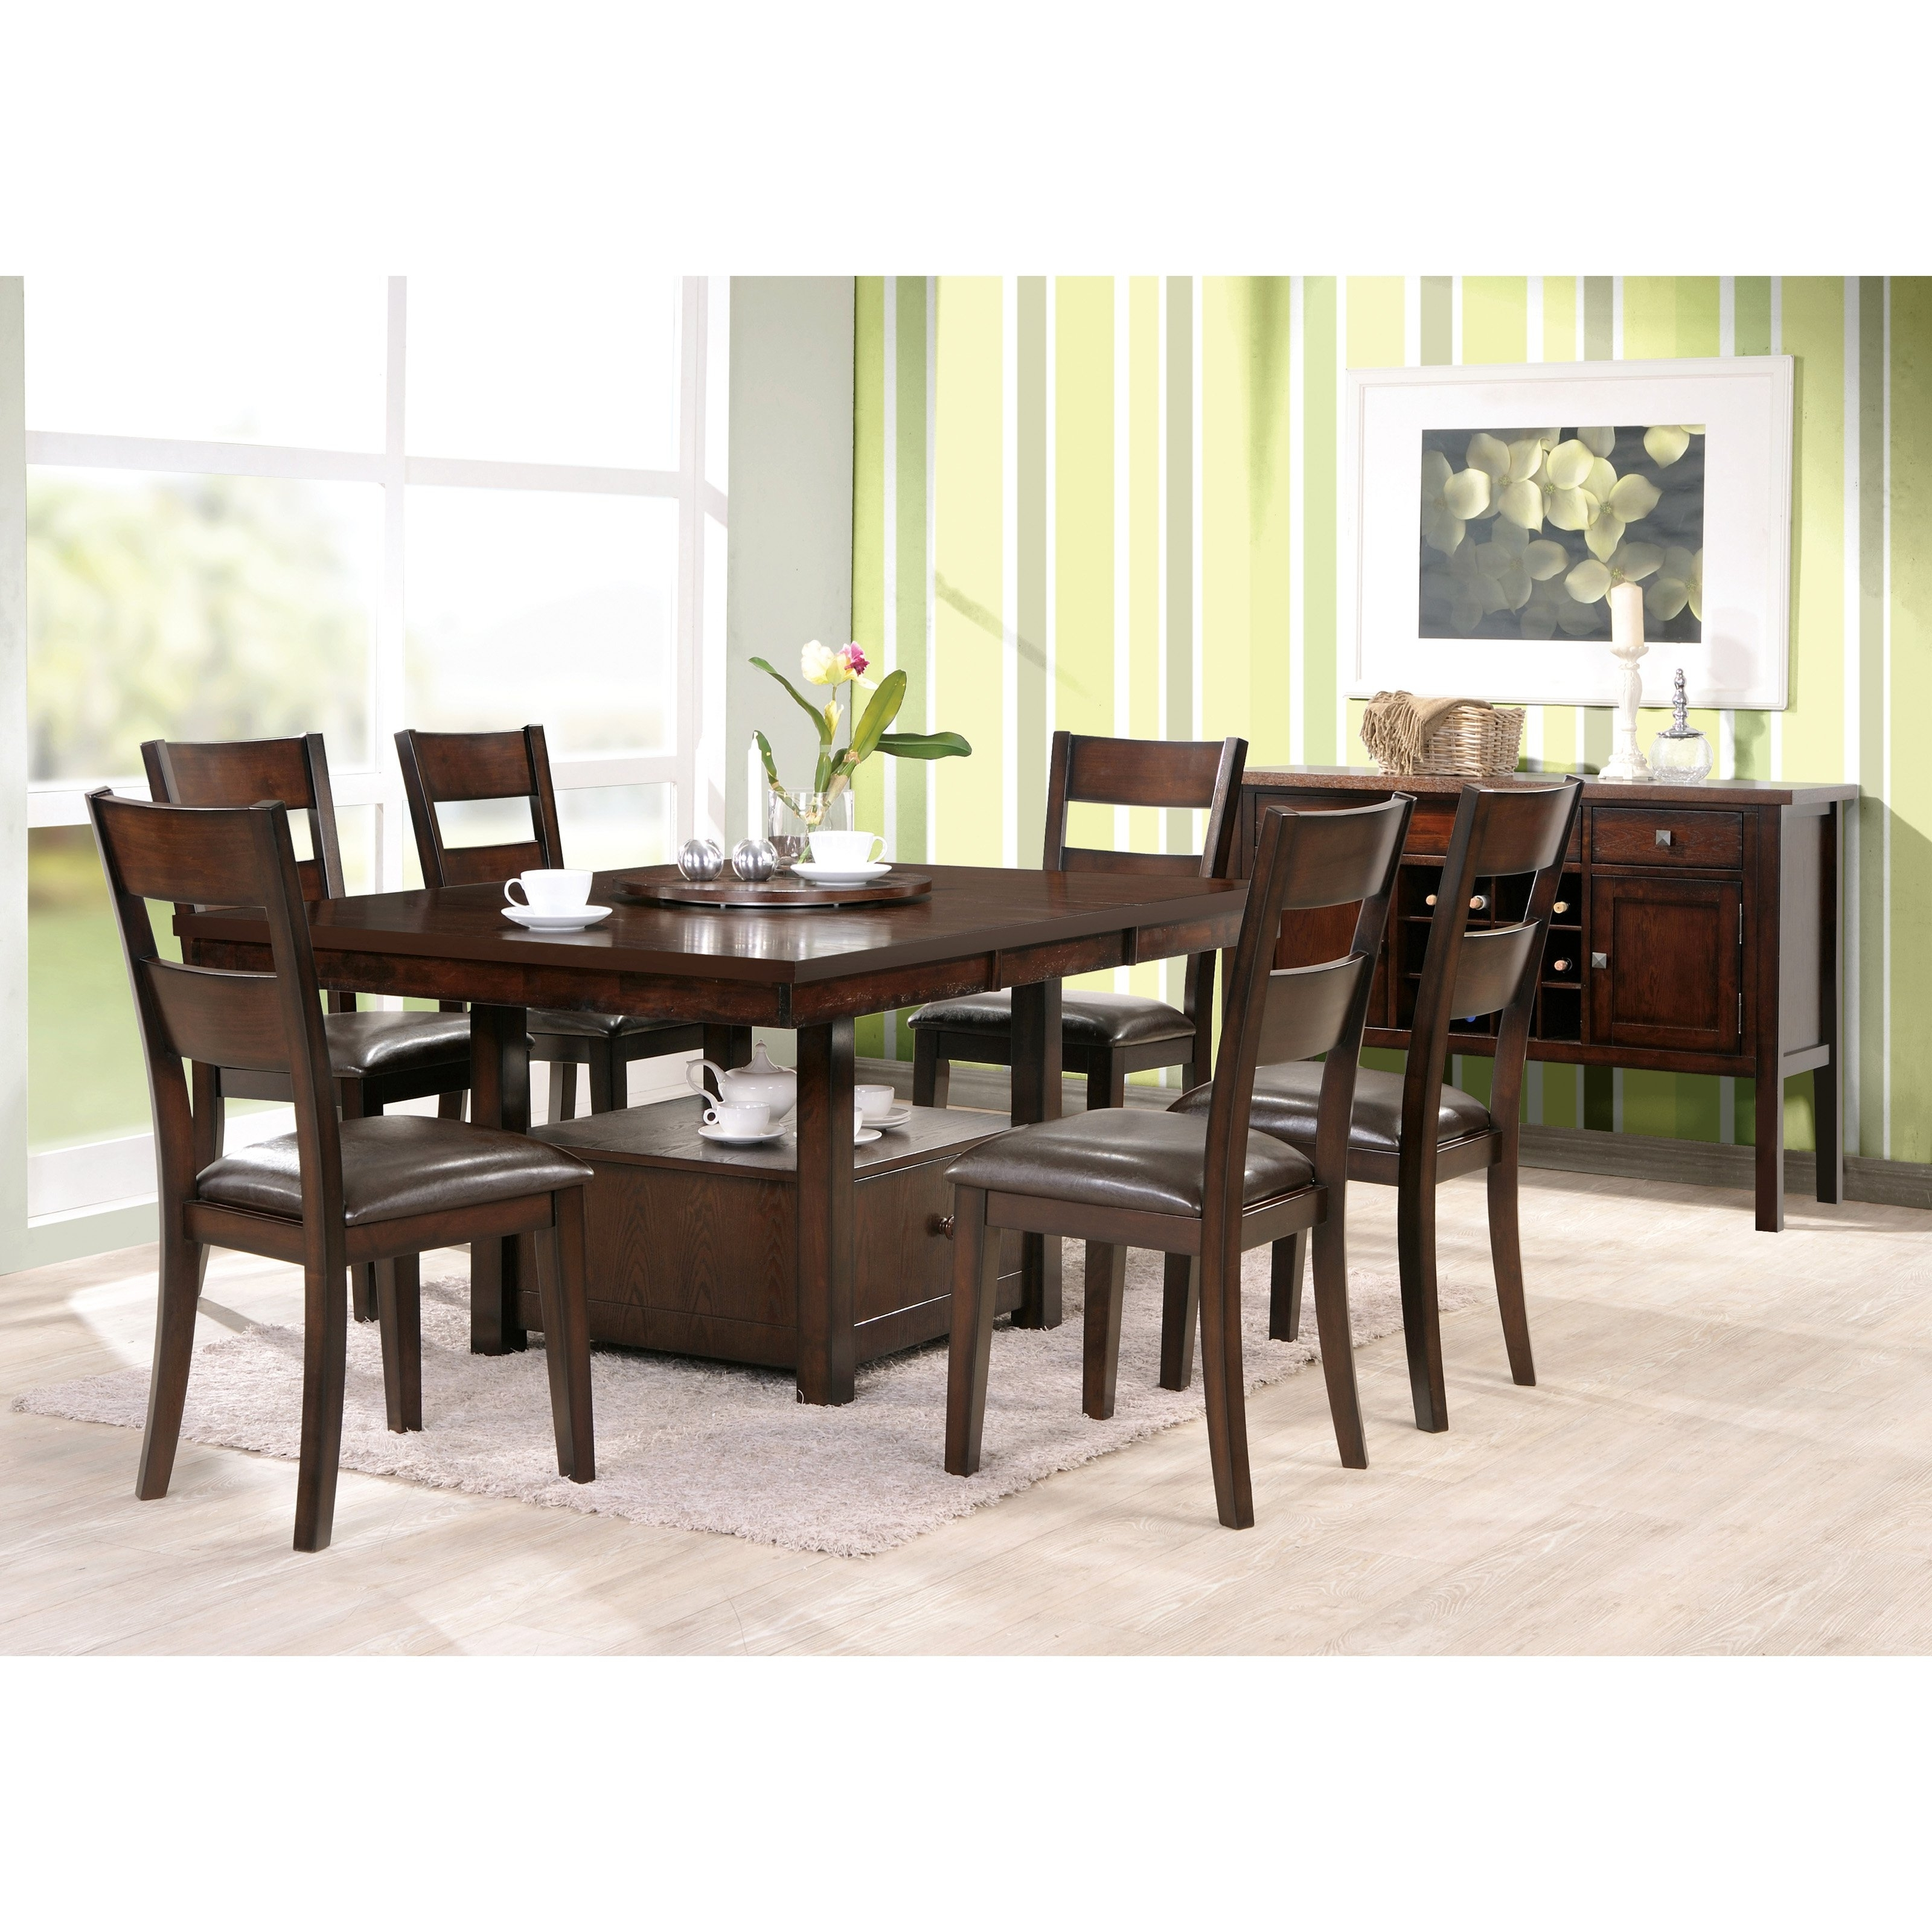 Rectangle Dark Brown Wooden Dining Table With Drawers Addeddark For Trendy Dark Brown Wood Dining Tables (View 21 of 25)